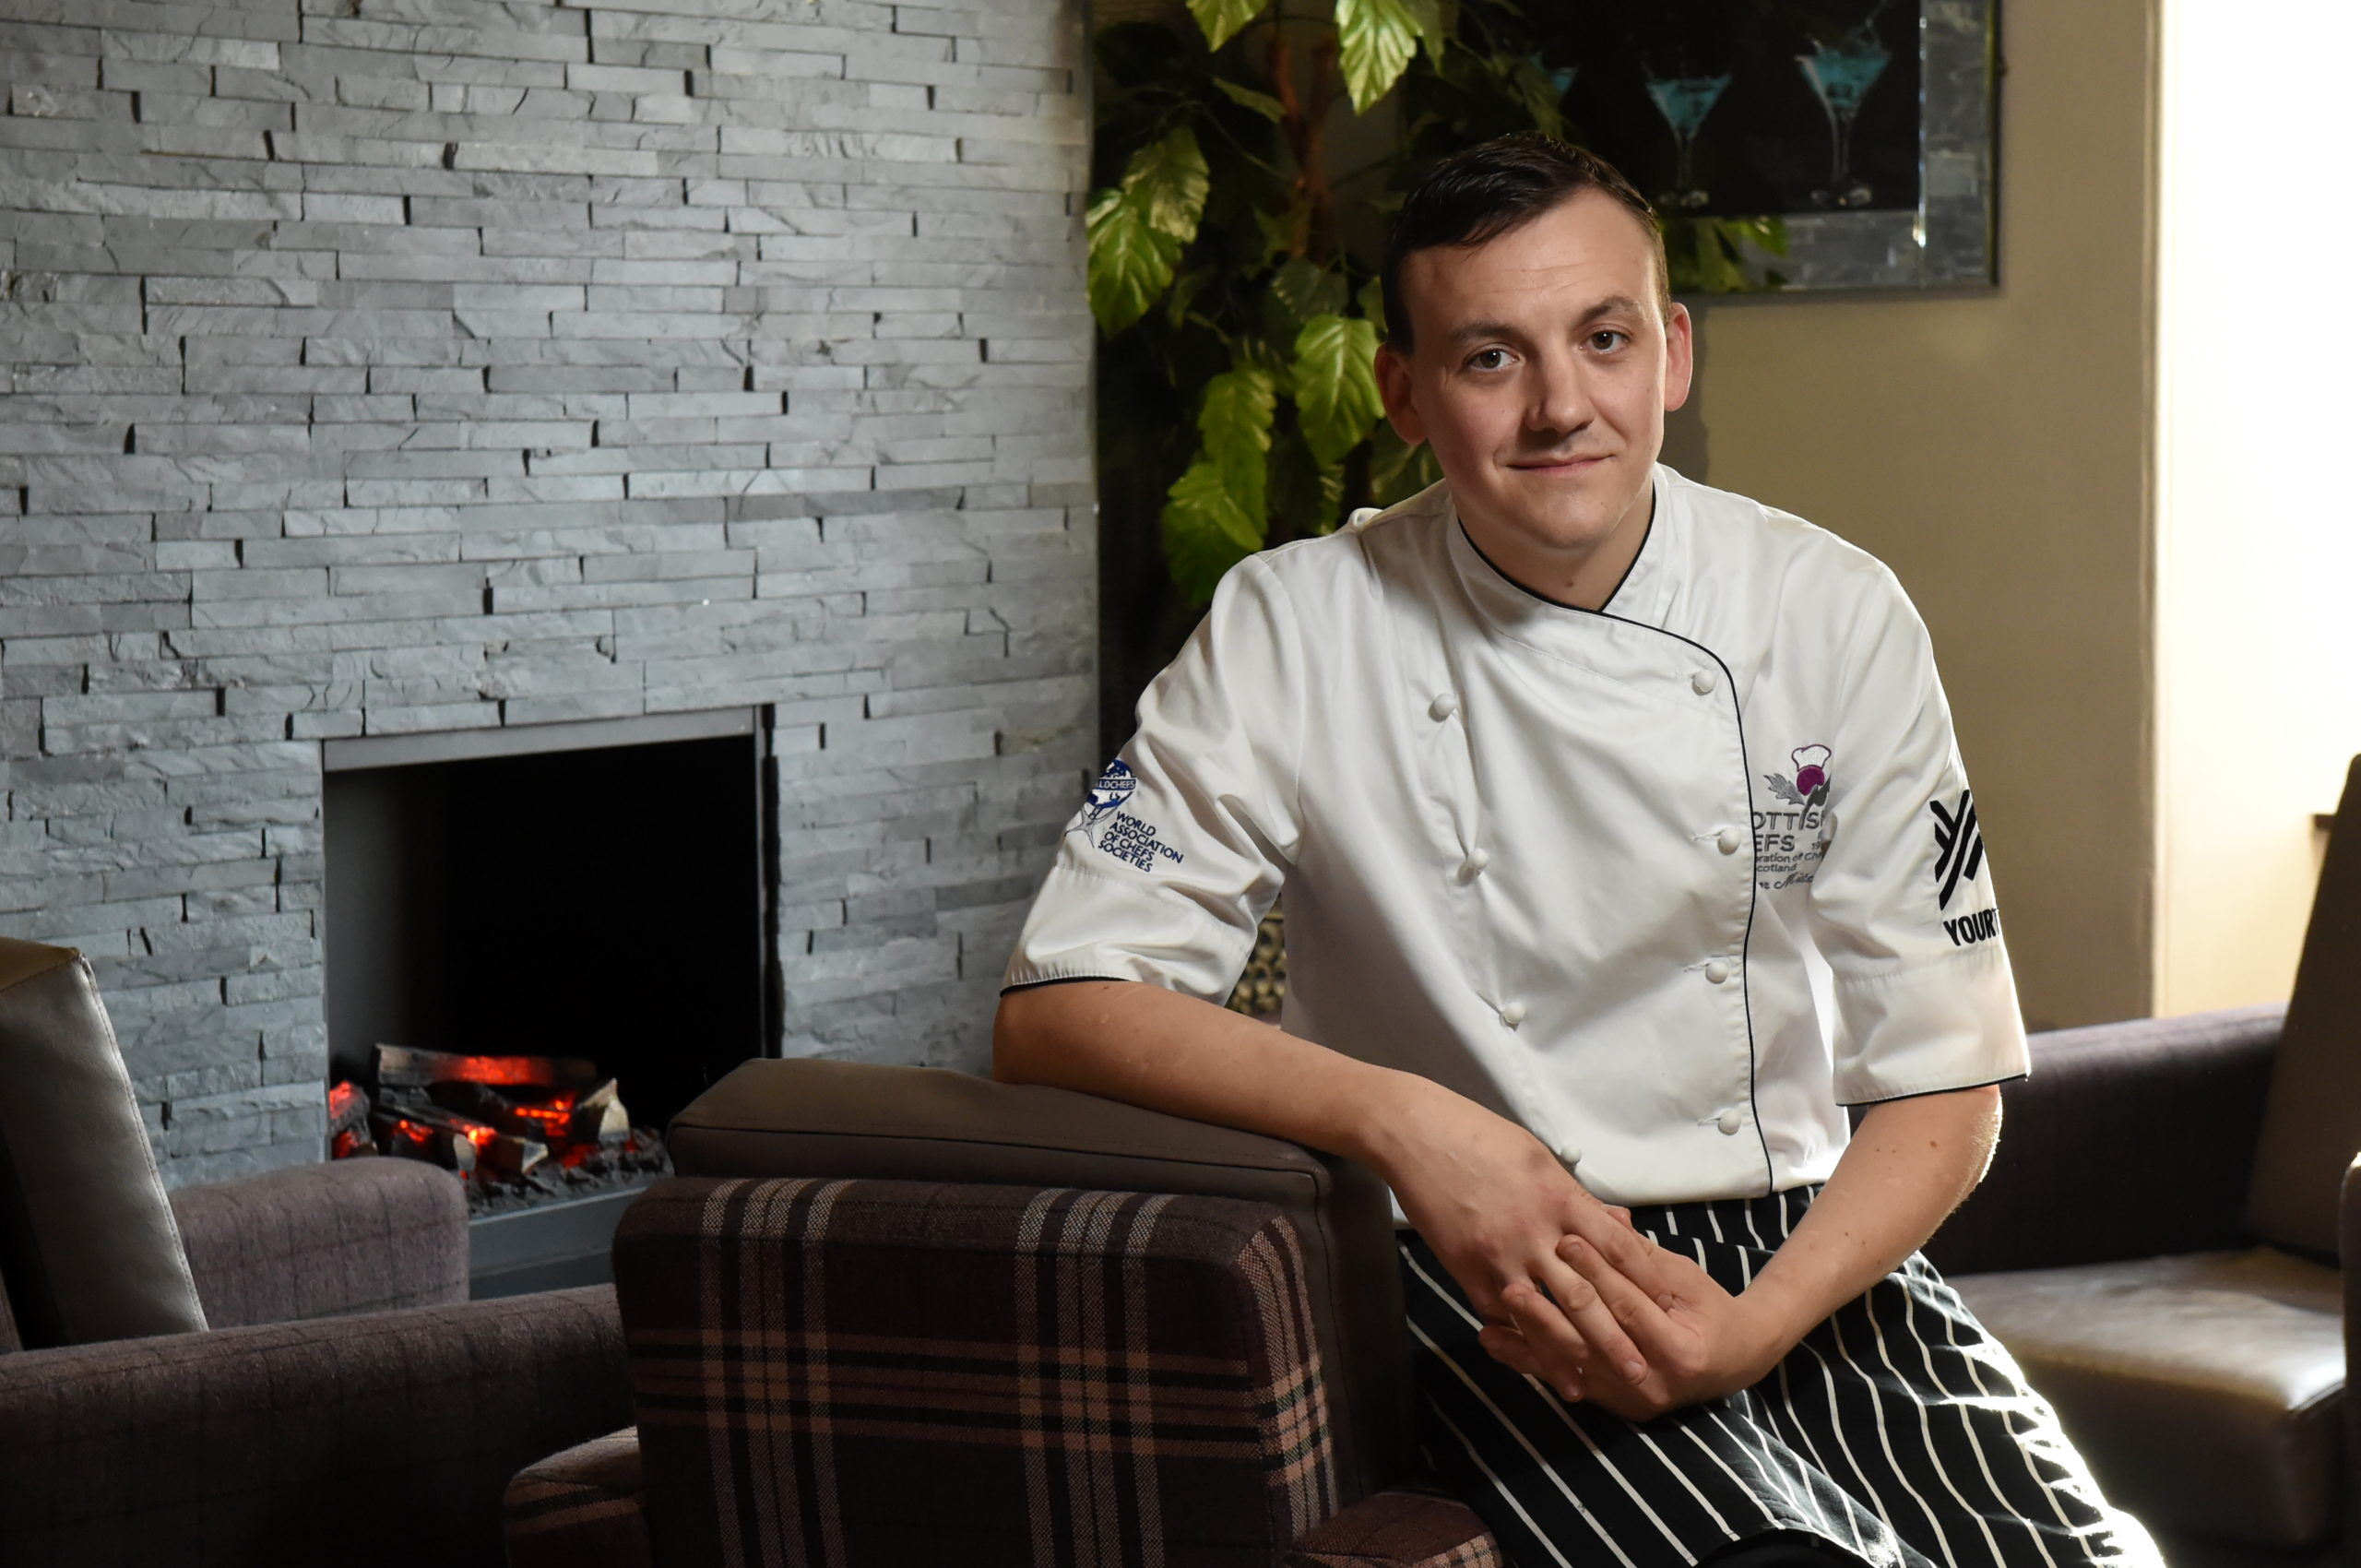 North-east chef Graham Mitchell will go head-to-head with other chefs to win the trip of a lifetime to Norway